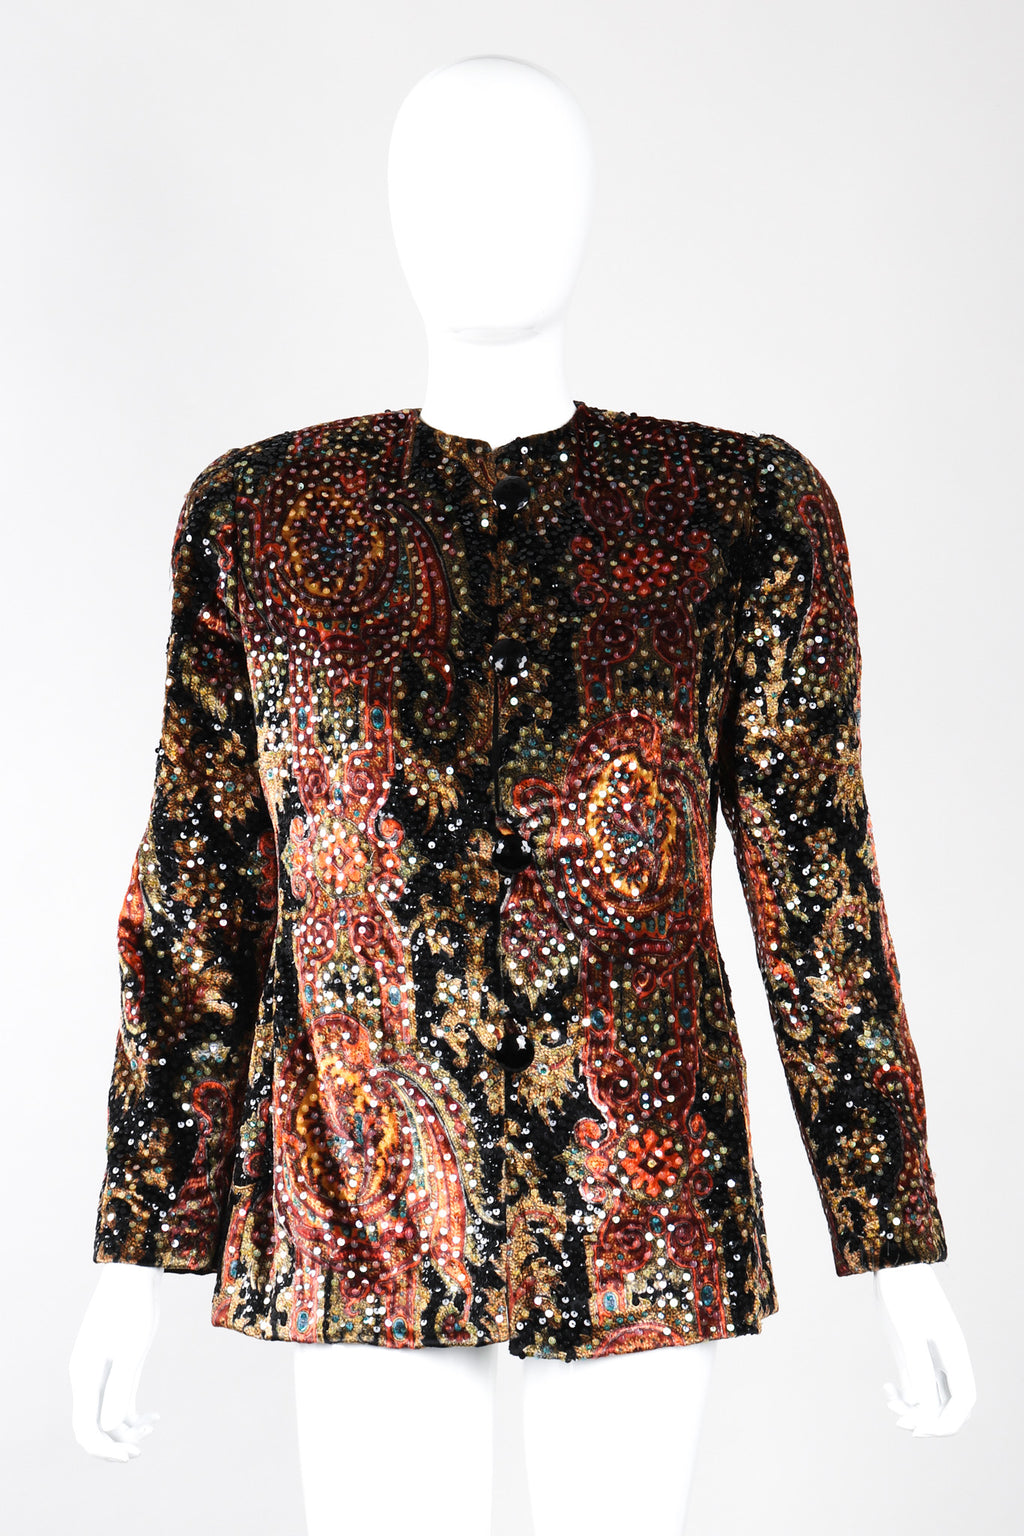 Recess Los Angeles Vintage Bill Blass Iridescent Sequin Velvet Print Jacket